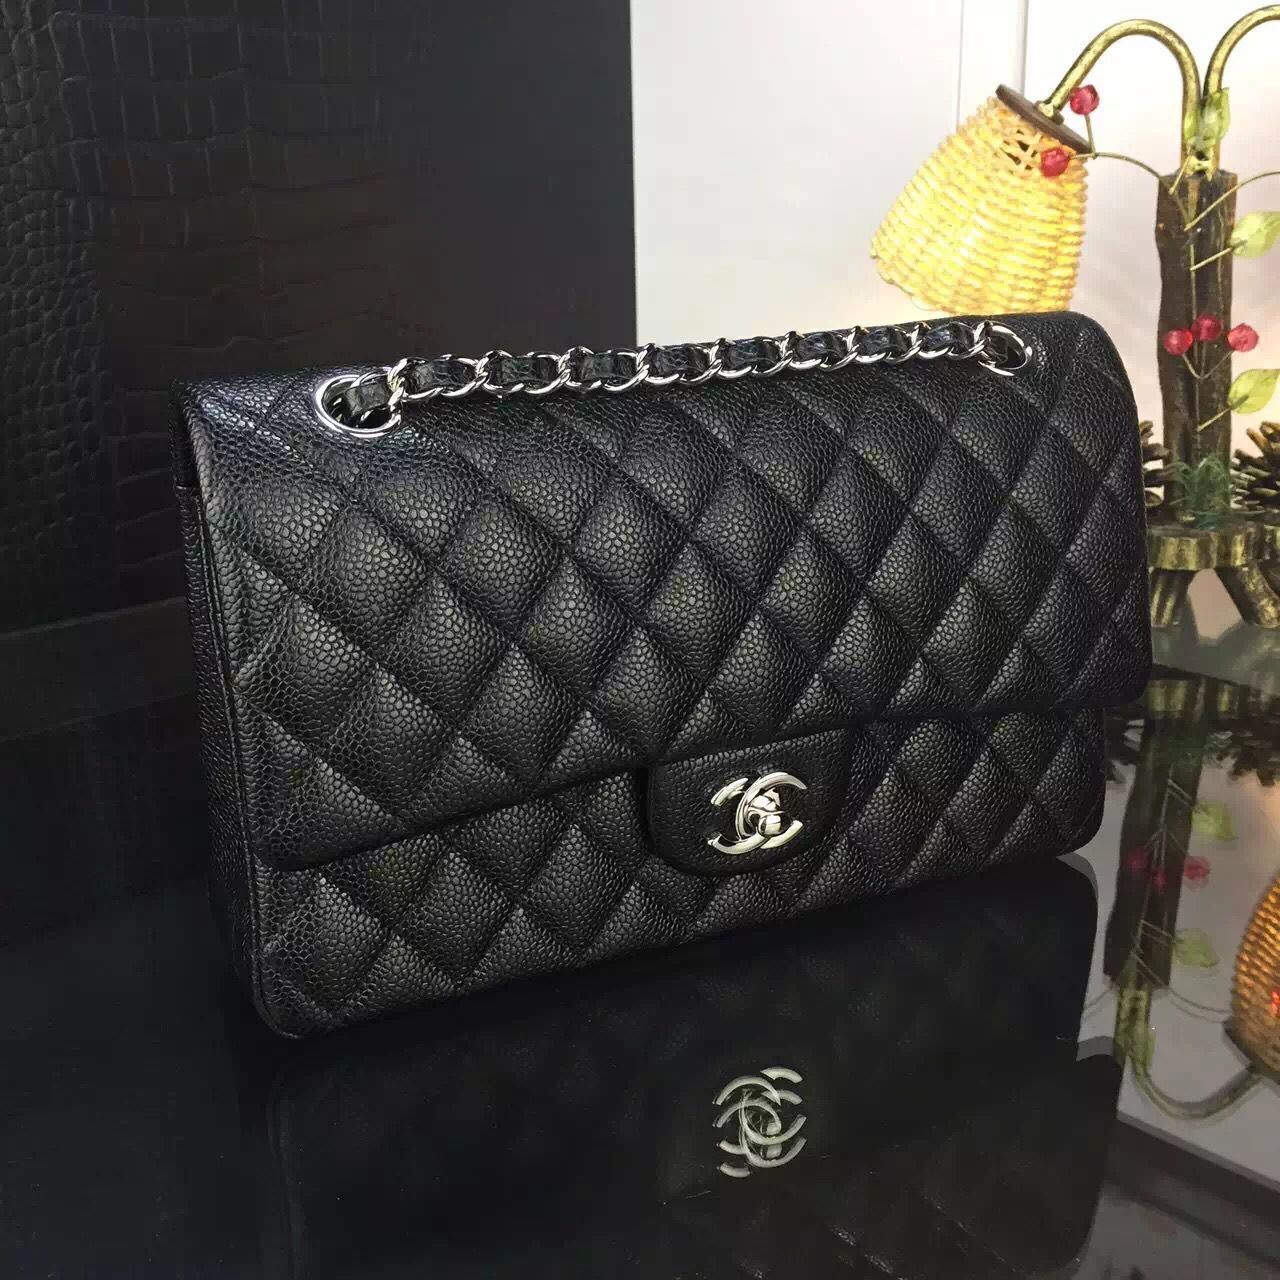 Chanel 2.55 Series Flap Bag Original Lambskin Leather Black Silver 1113